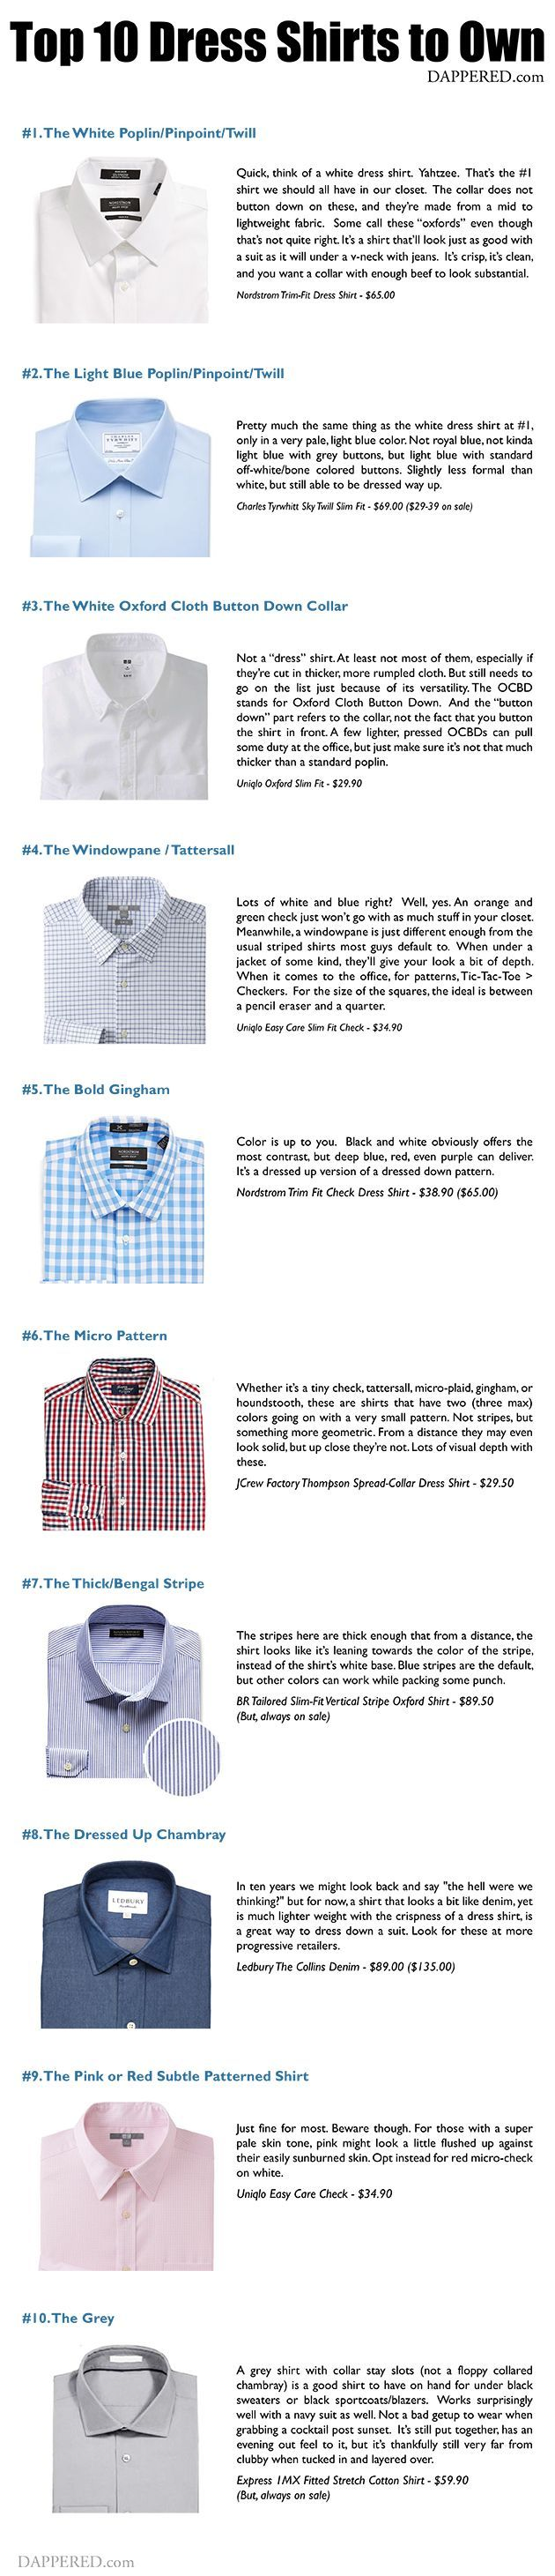 The Top 10 Types of Dress Shirts to Own | Dappered.com